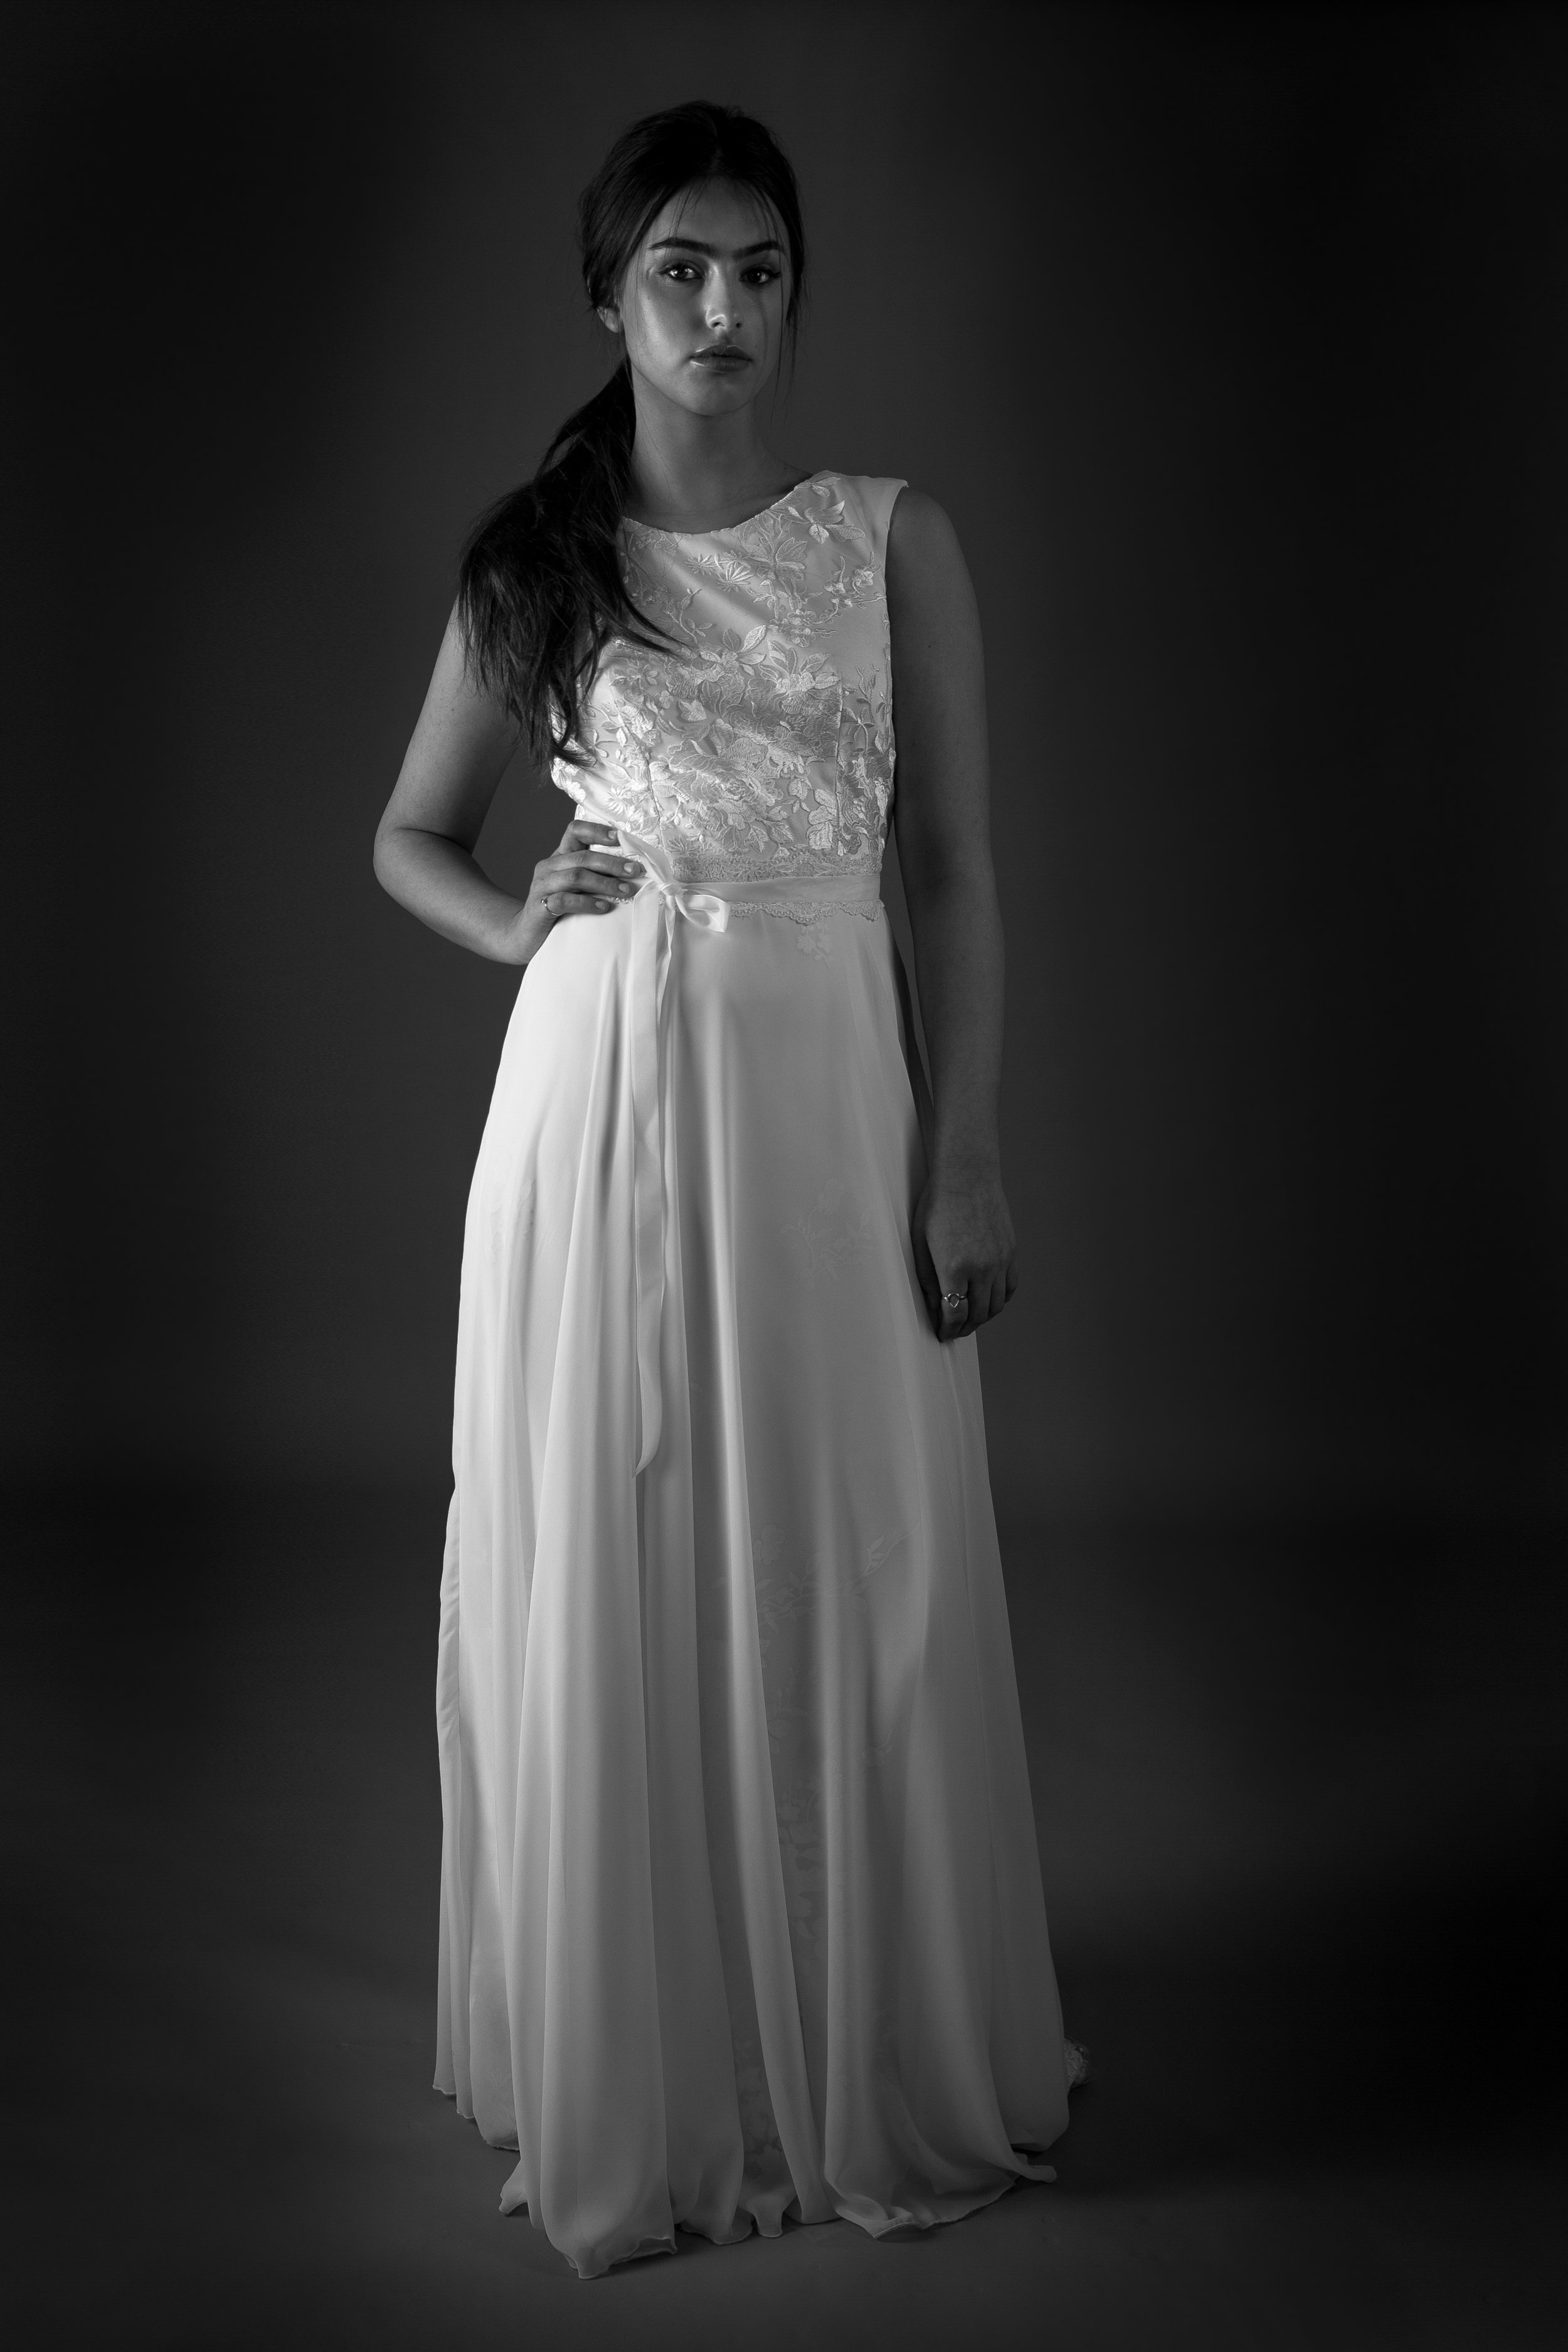 LORELIE DRESS WITH TEAGAN SKIRT AND LACE BELT